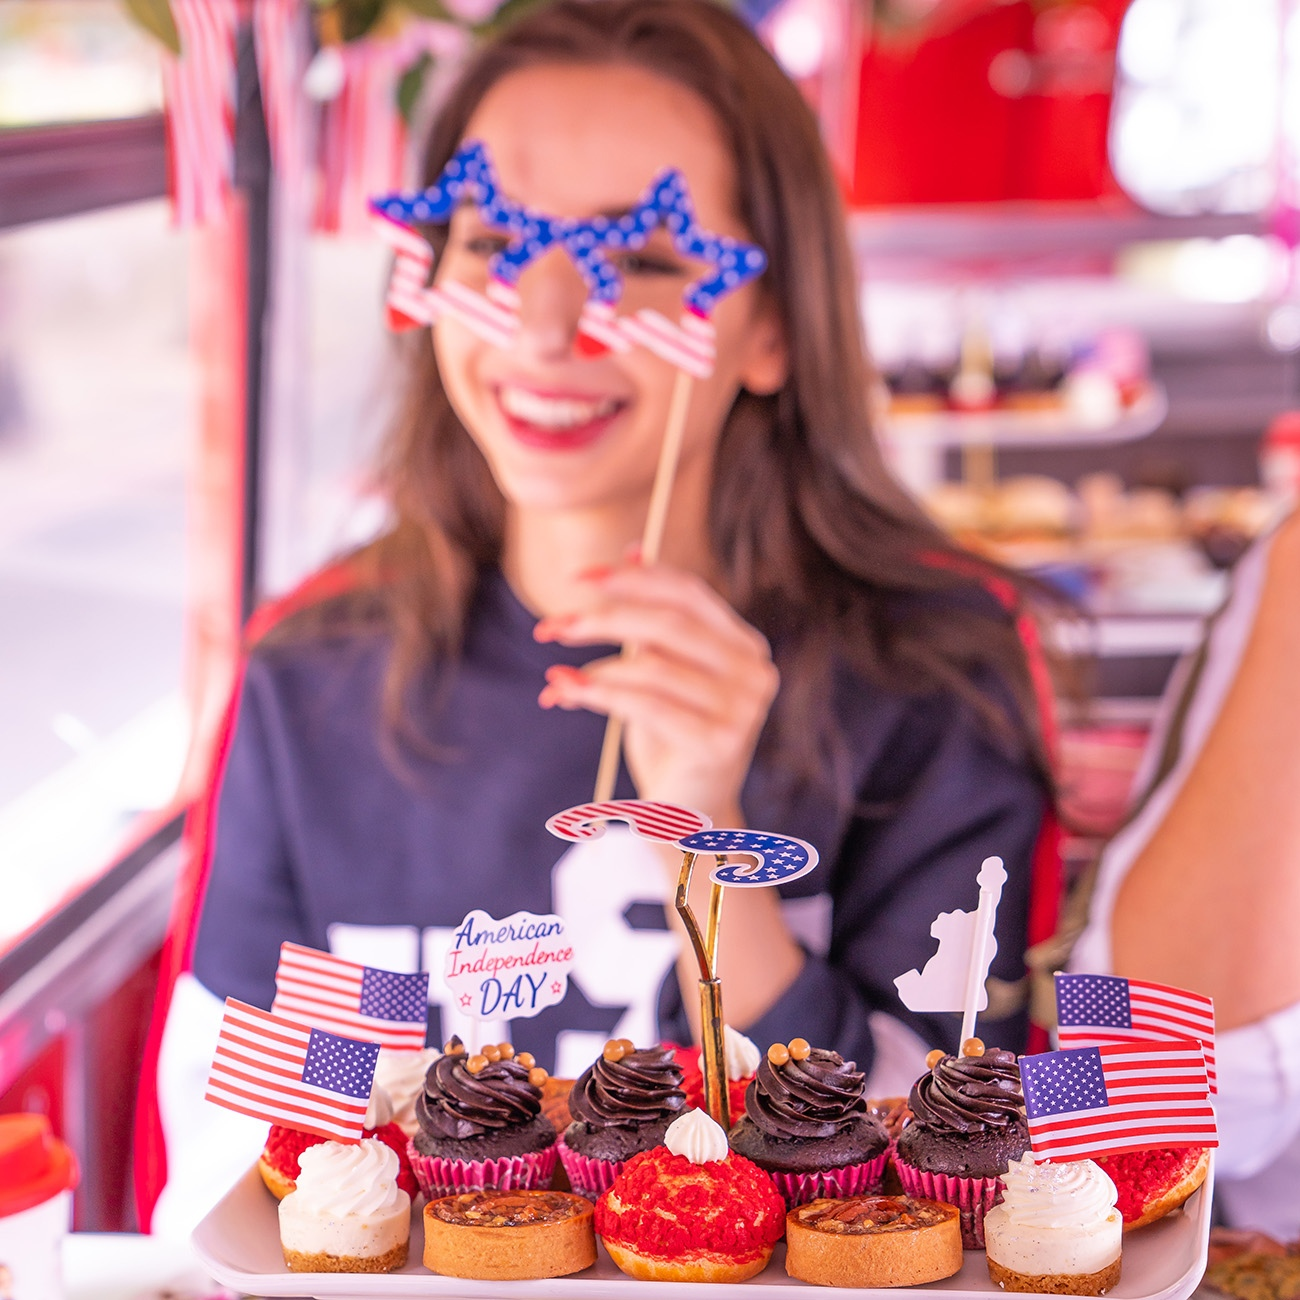 Escape the Everyday - 4th July Bus Tour